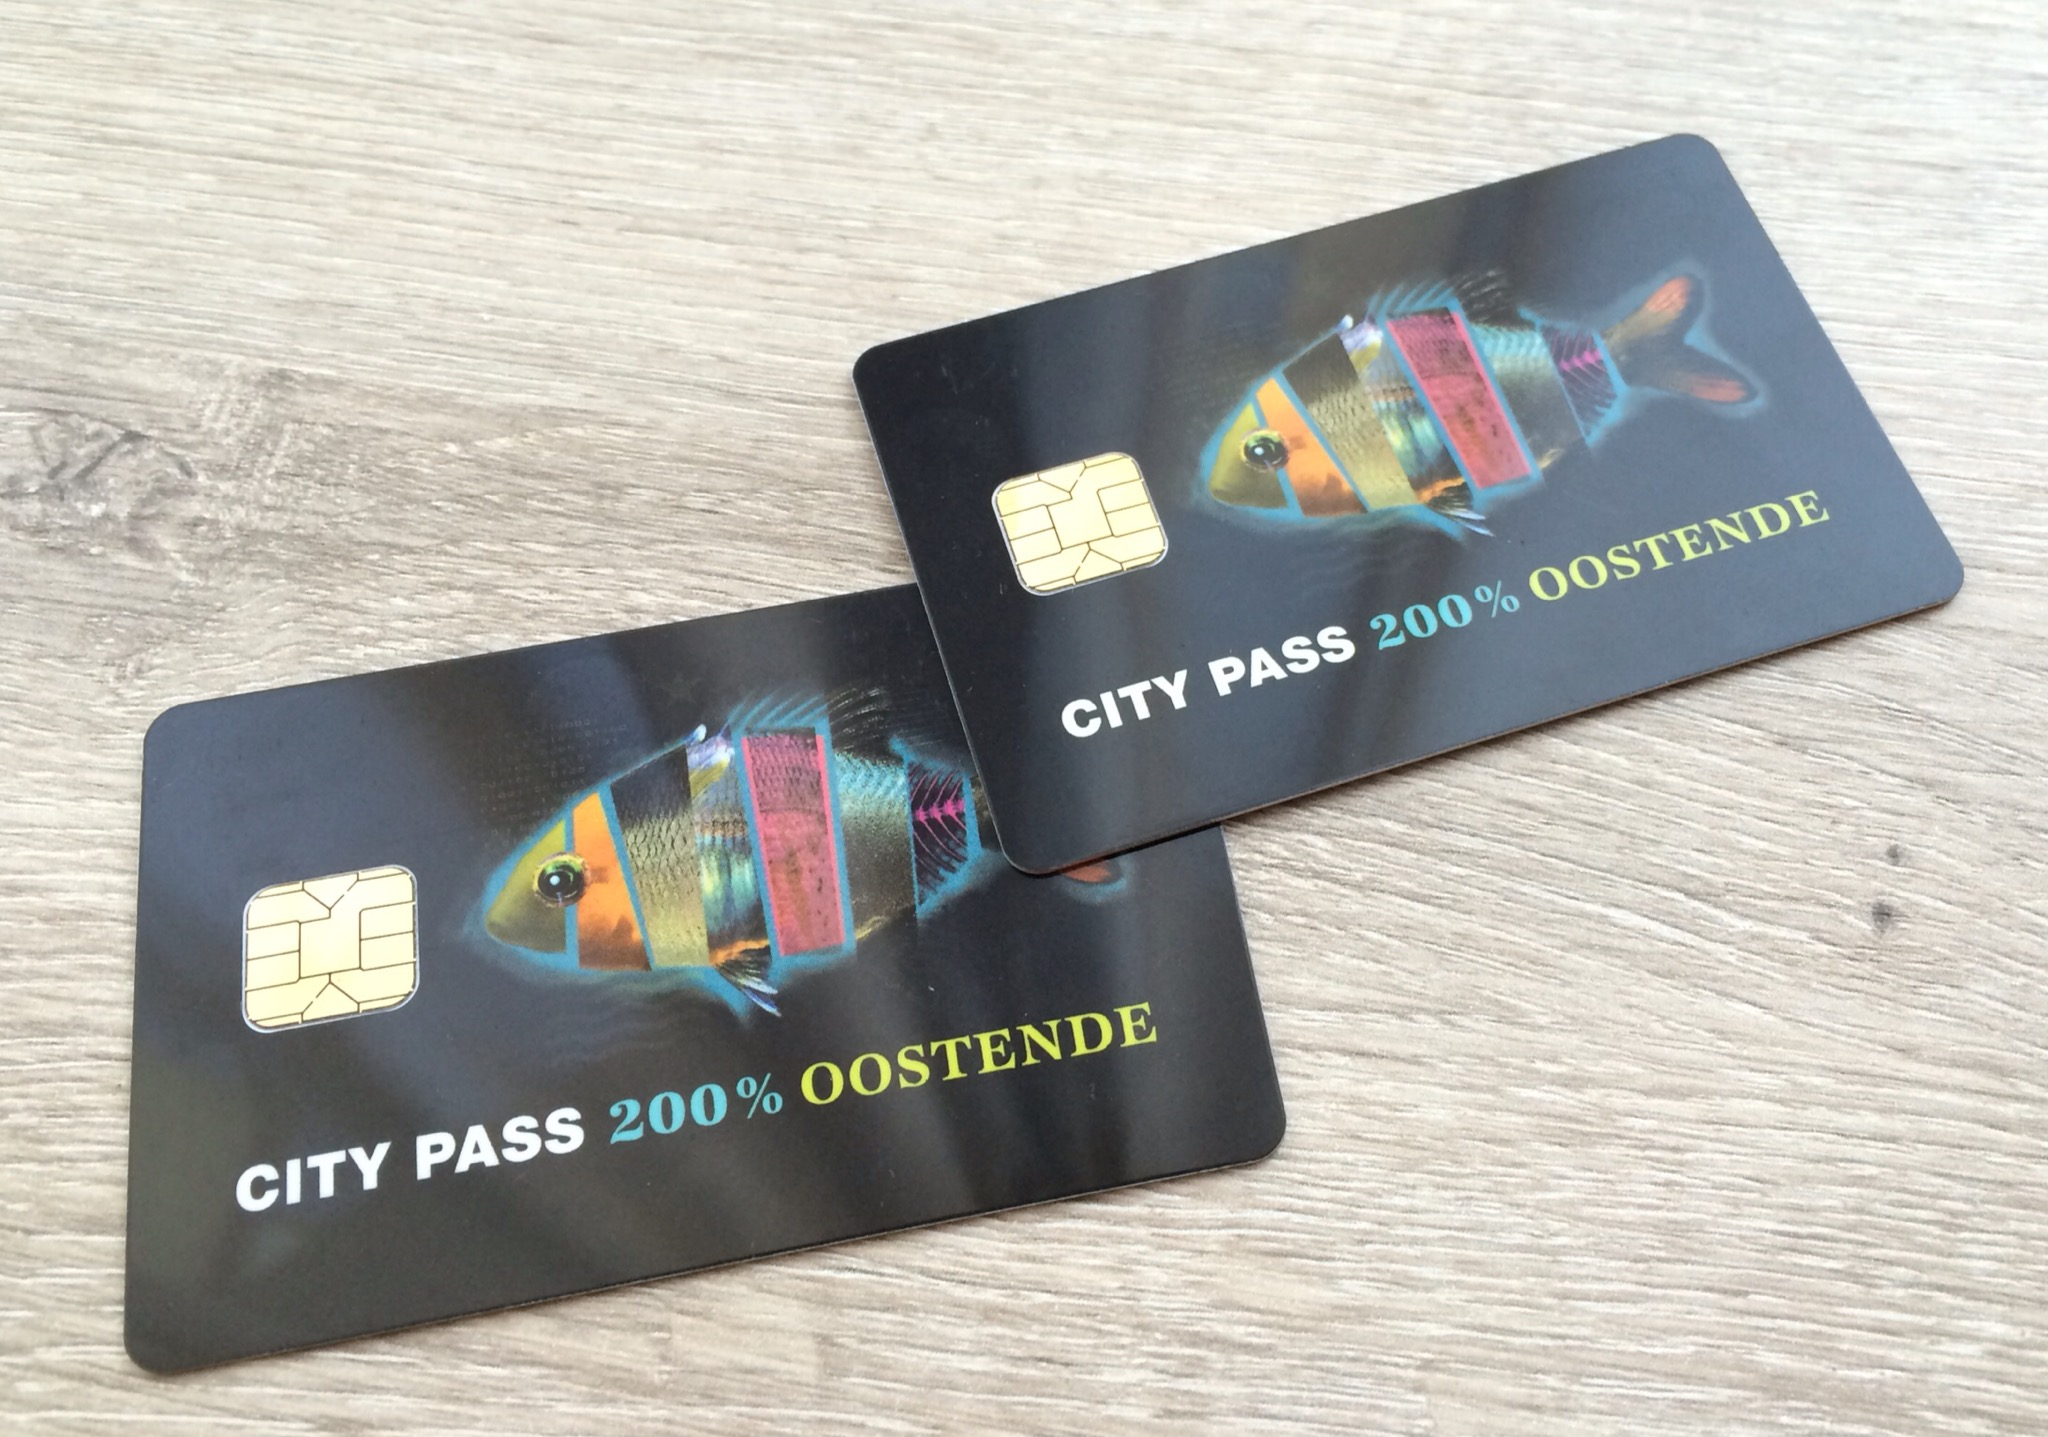 City pass 200% Oostende